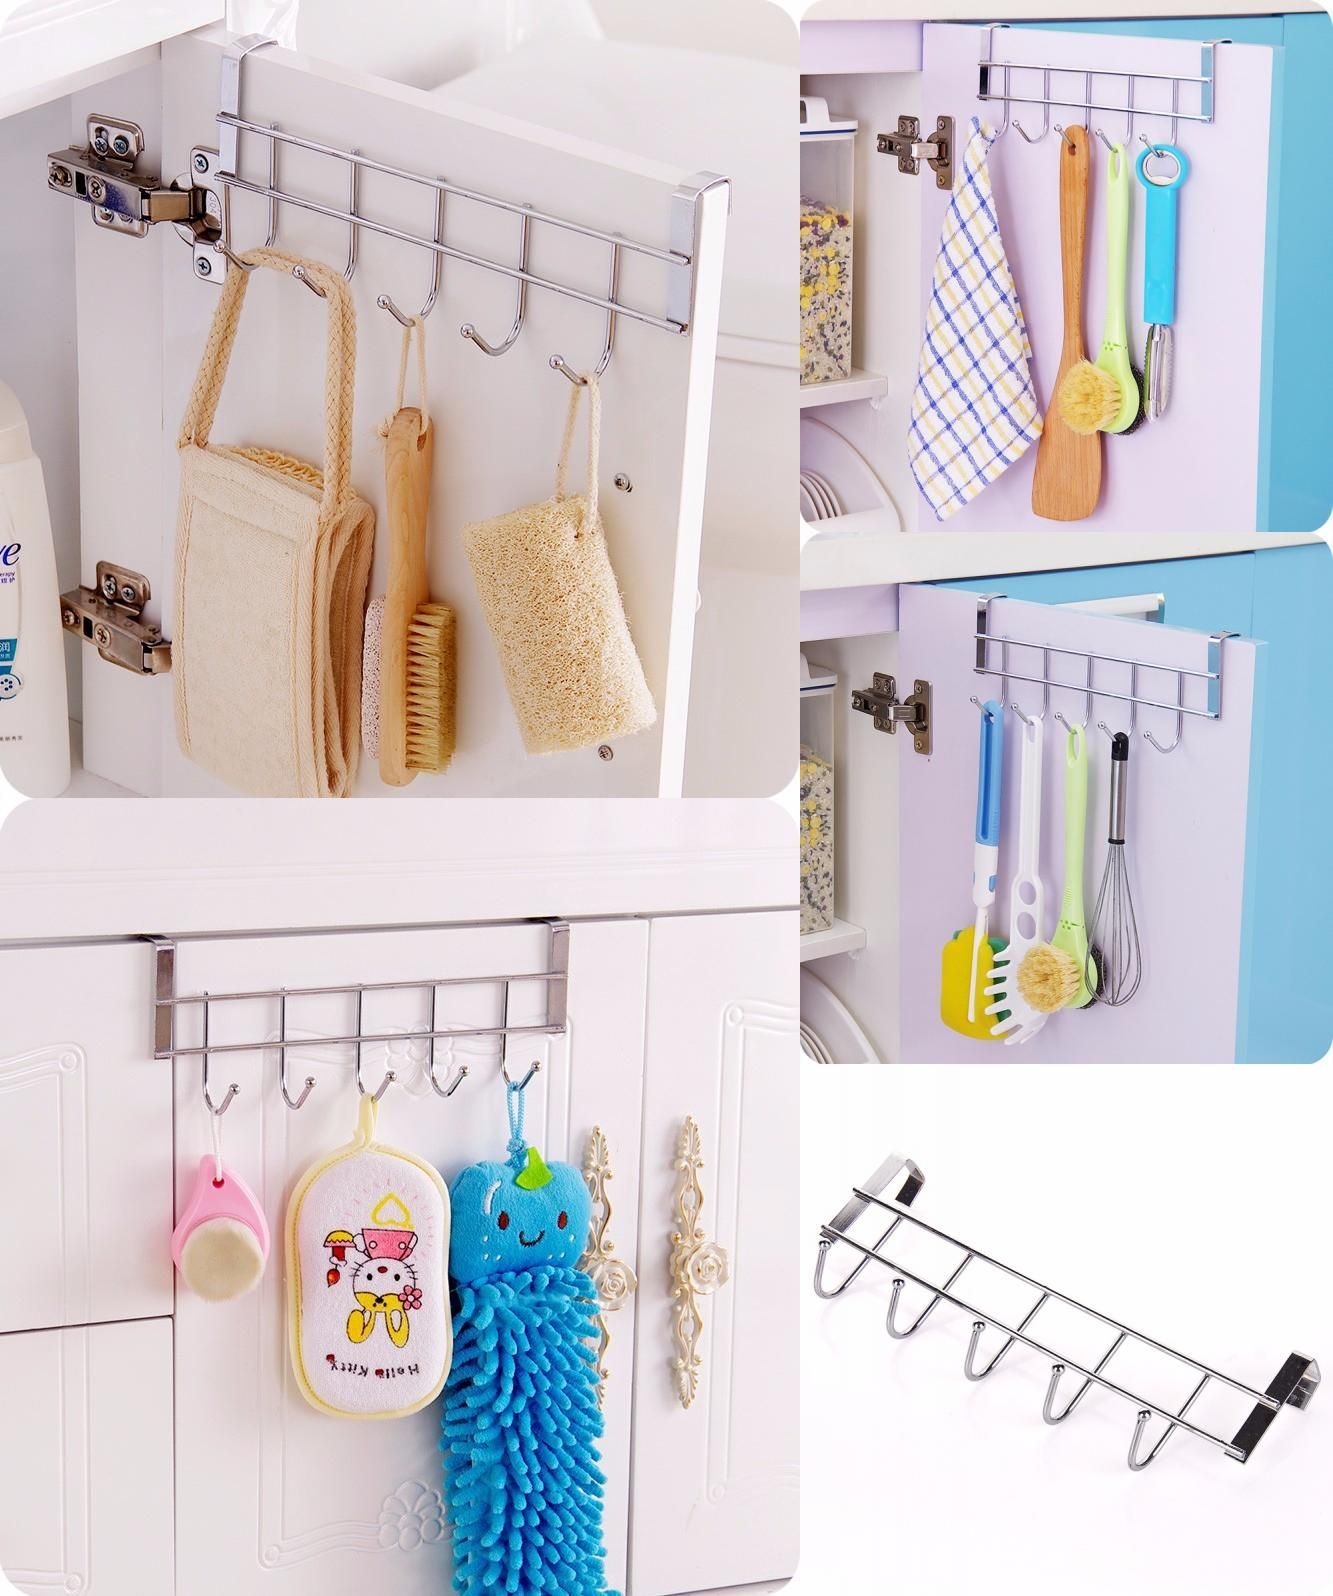 [Visit To Buy] Stainless Steel Bathroom Kitchen Organizer Hanger Hooks With  Towel Hat Coat Clothes Cabinet Draw Door Wall Hooks